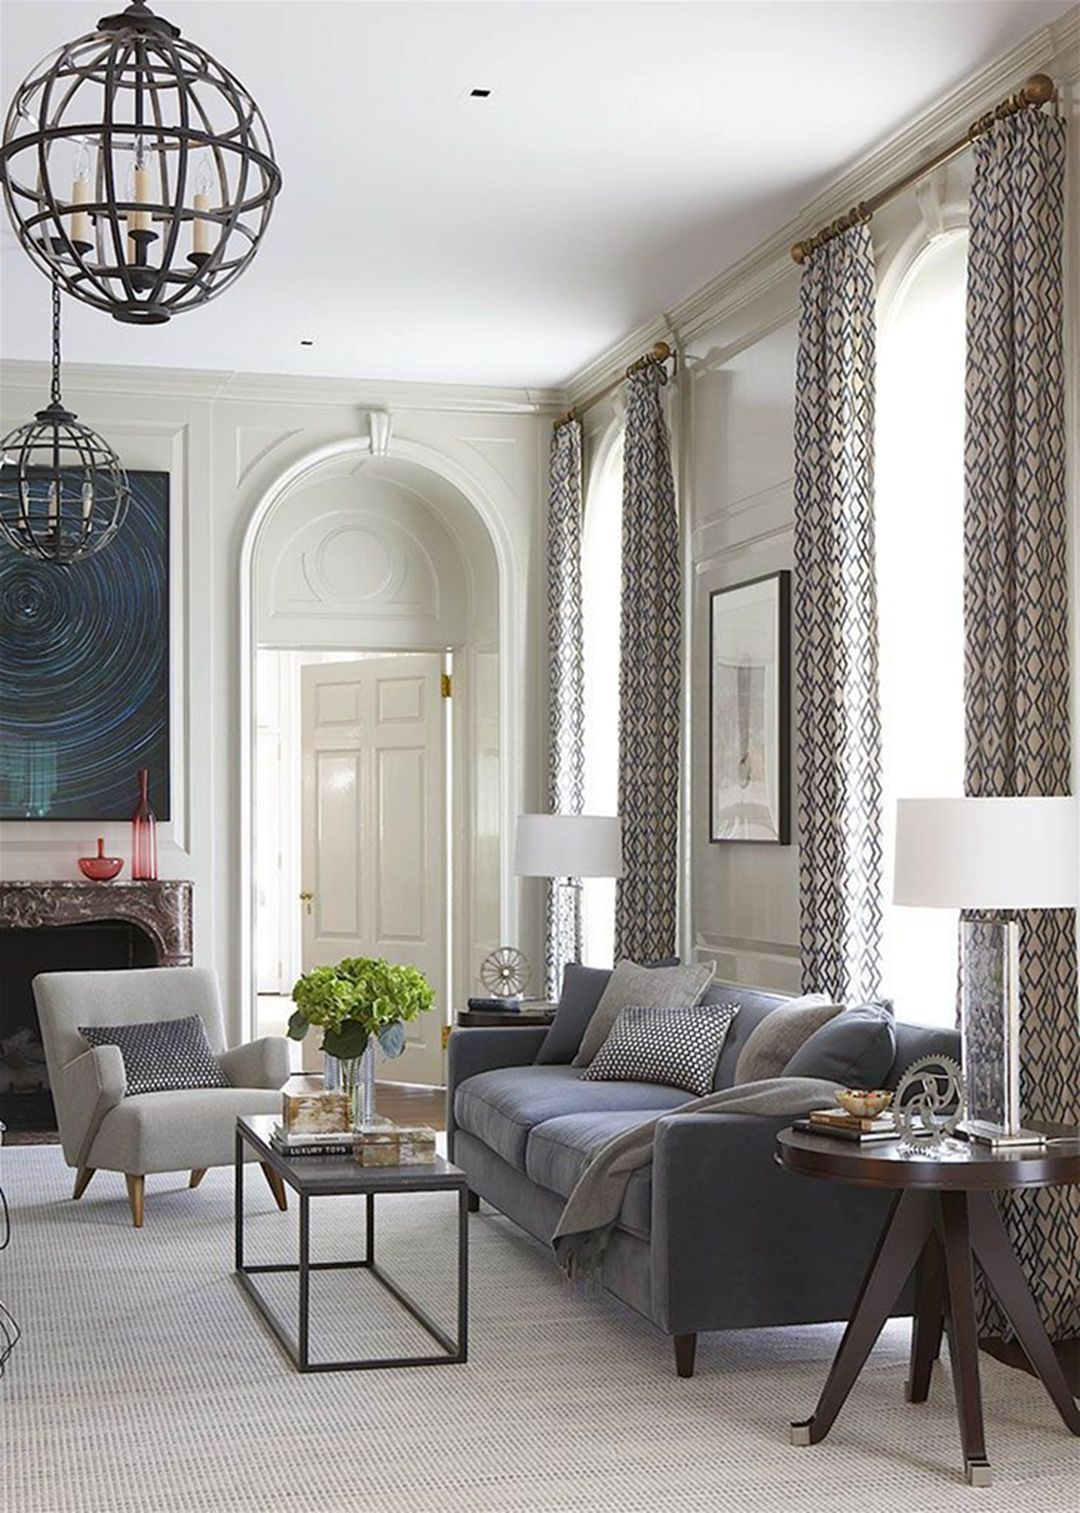 american living room luxury 45 amazing classic american on amazing inspiring modern living room ideas for your home id=32397